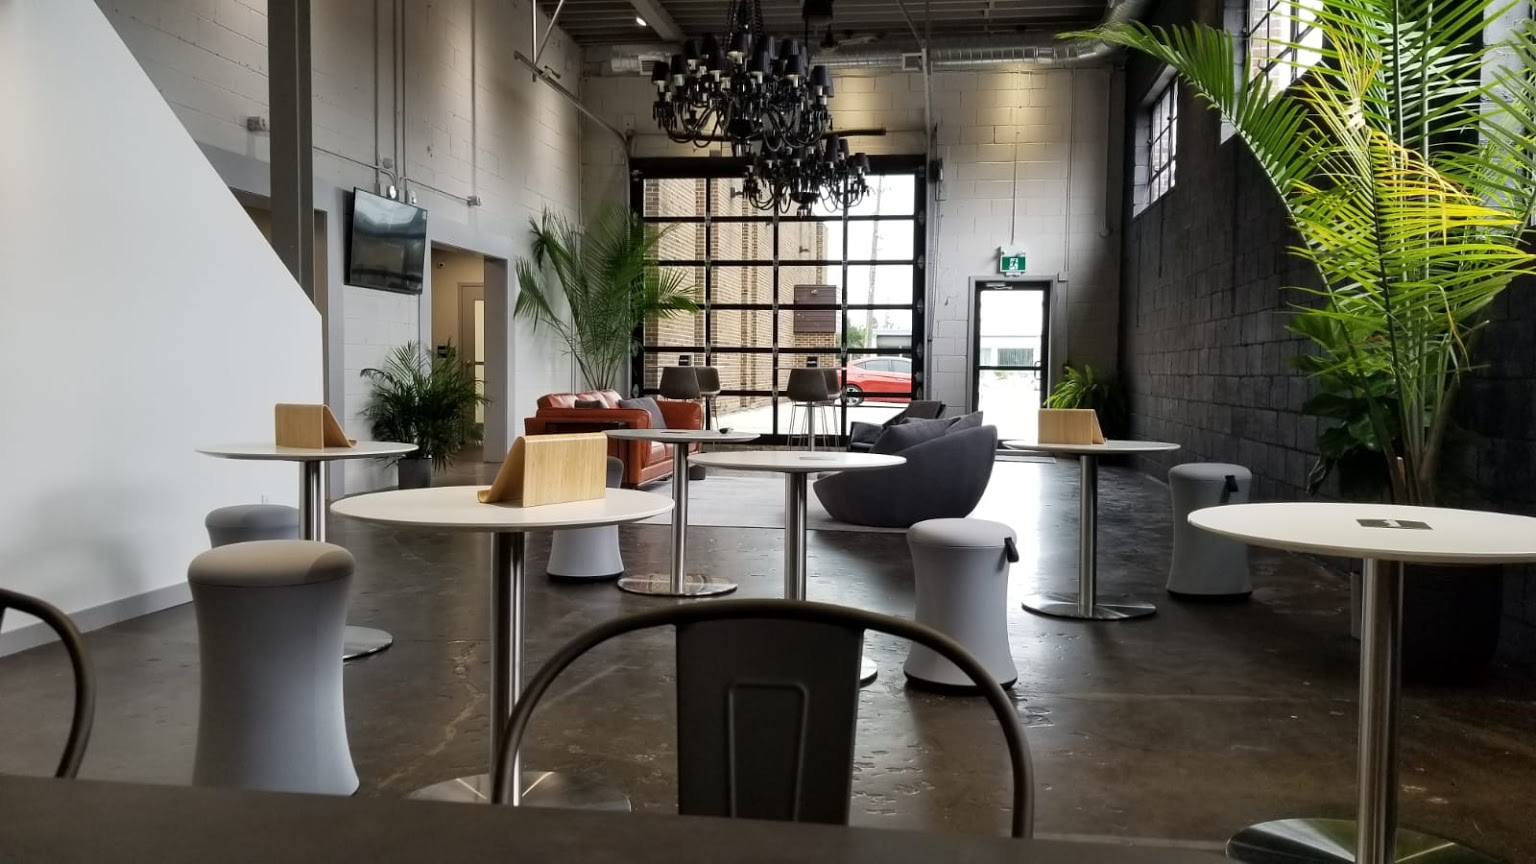 Image of a well lit, open office setting with various types of seating, tables and plants.